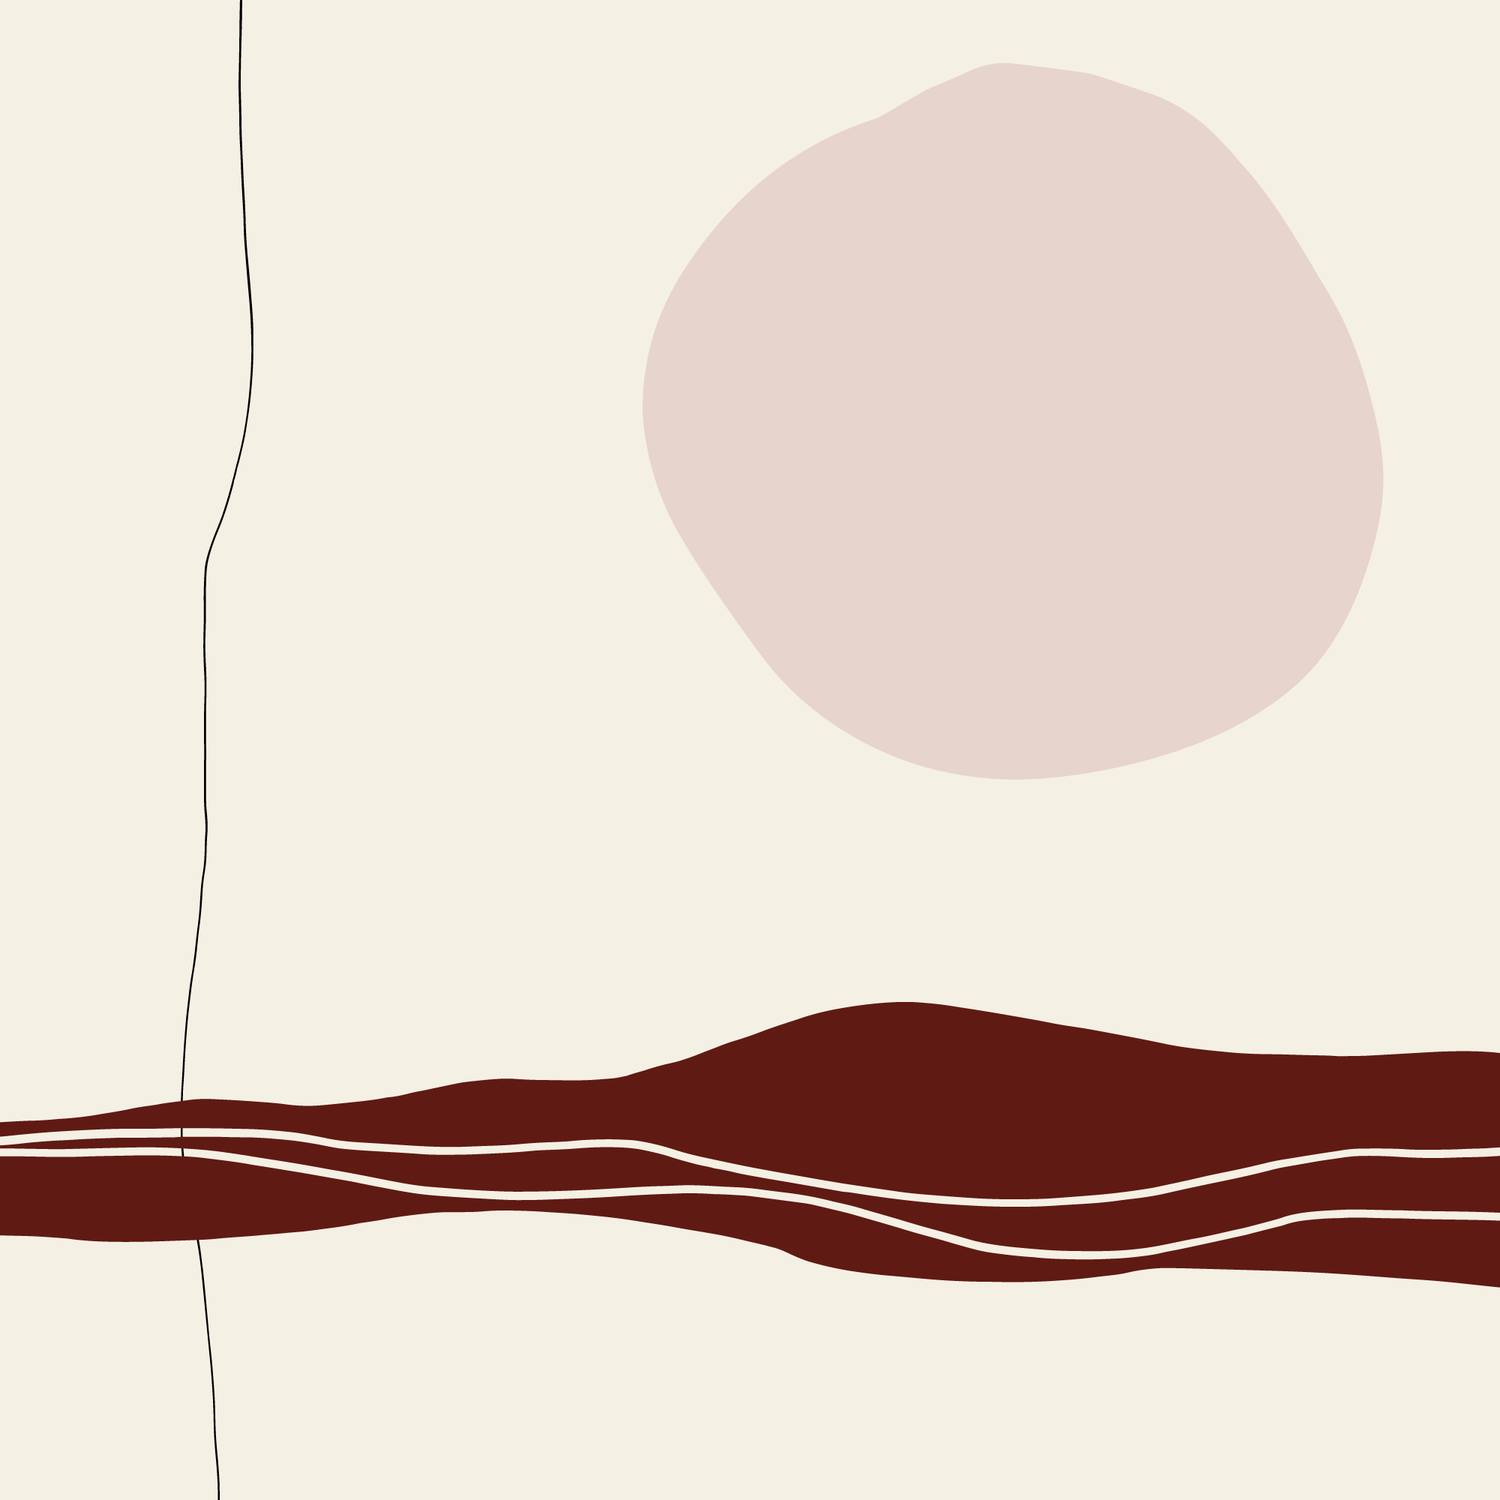 Guidance & Beyond - The Akashic Guidance Program will be an opportunity to work in a more committed and specialized way. Through our work together in your Akashic Records, we will be able to identify and work through appointed healing objectives, belief patterns, emotional blocks, relationship and connection to spirit and more with intention and focus. This program will launch Spring 2020.